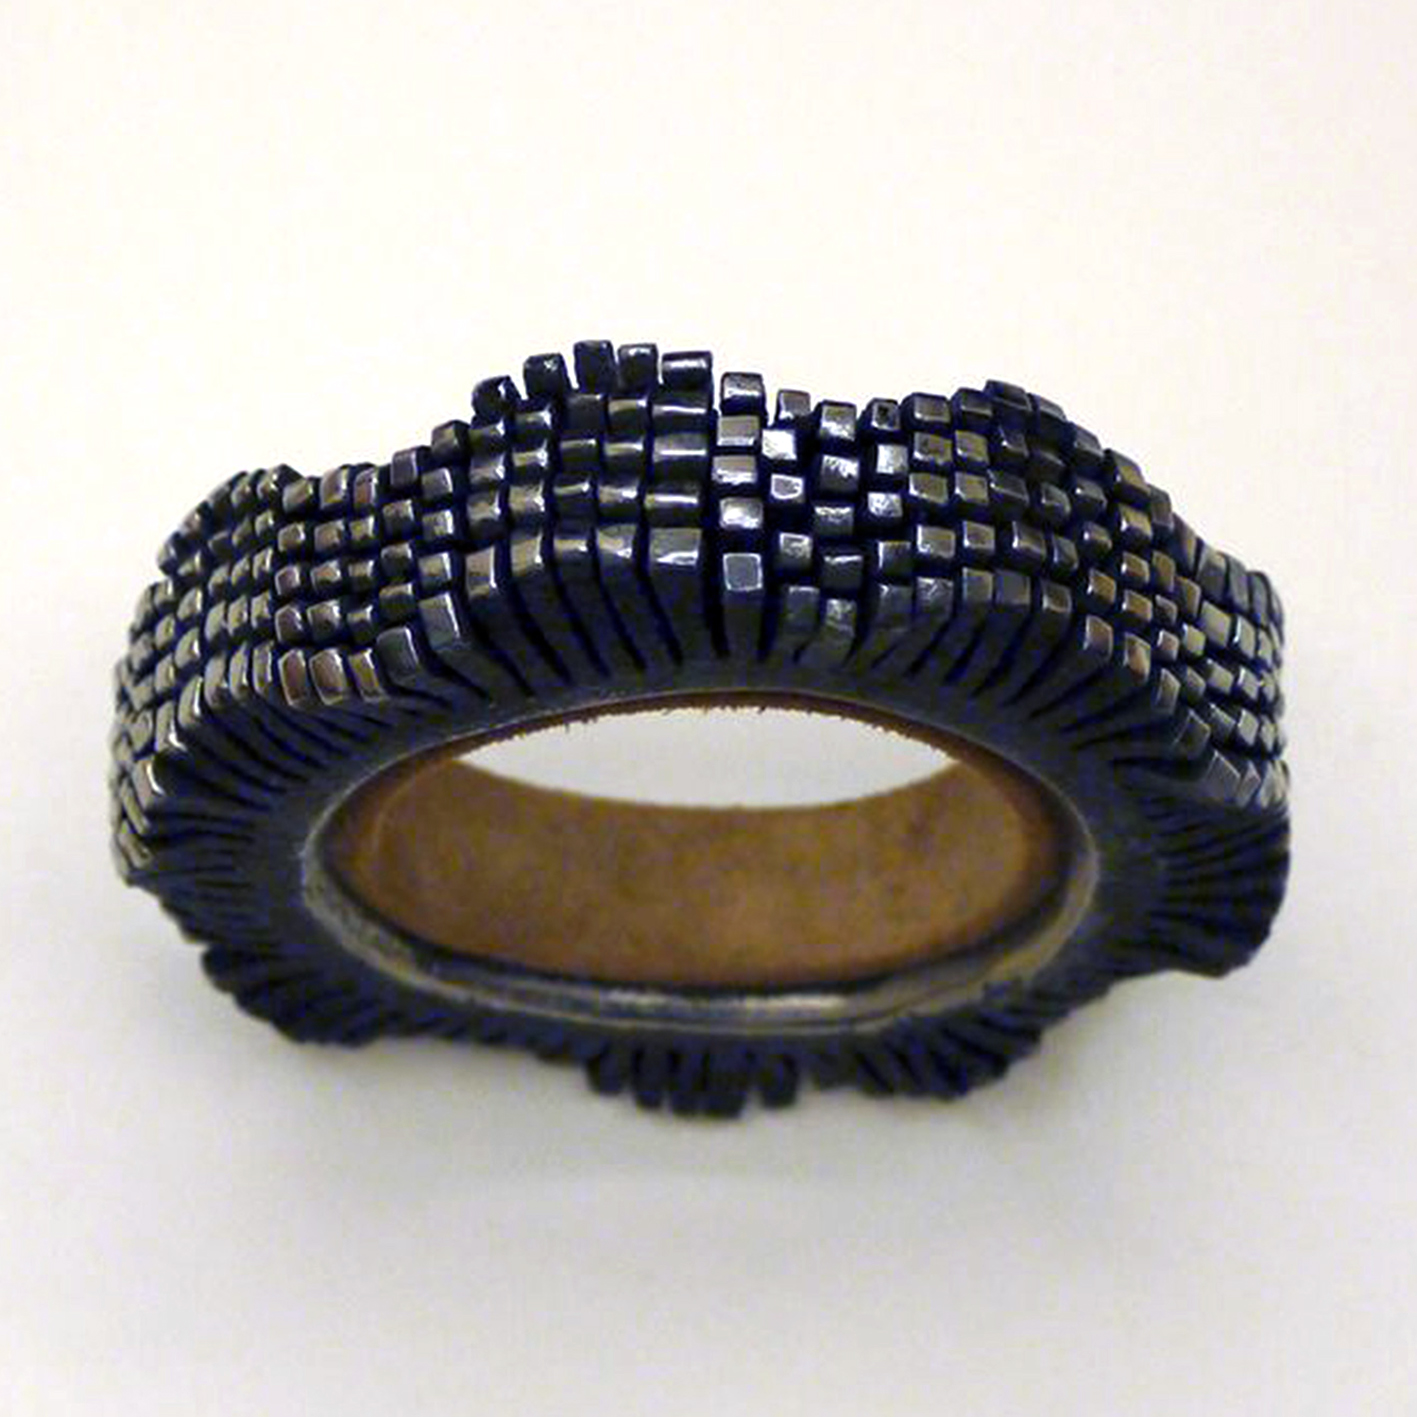 Juwelery bracelet from 'Iron Collection'